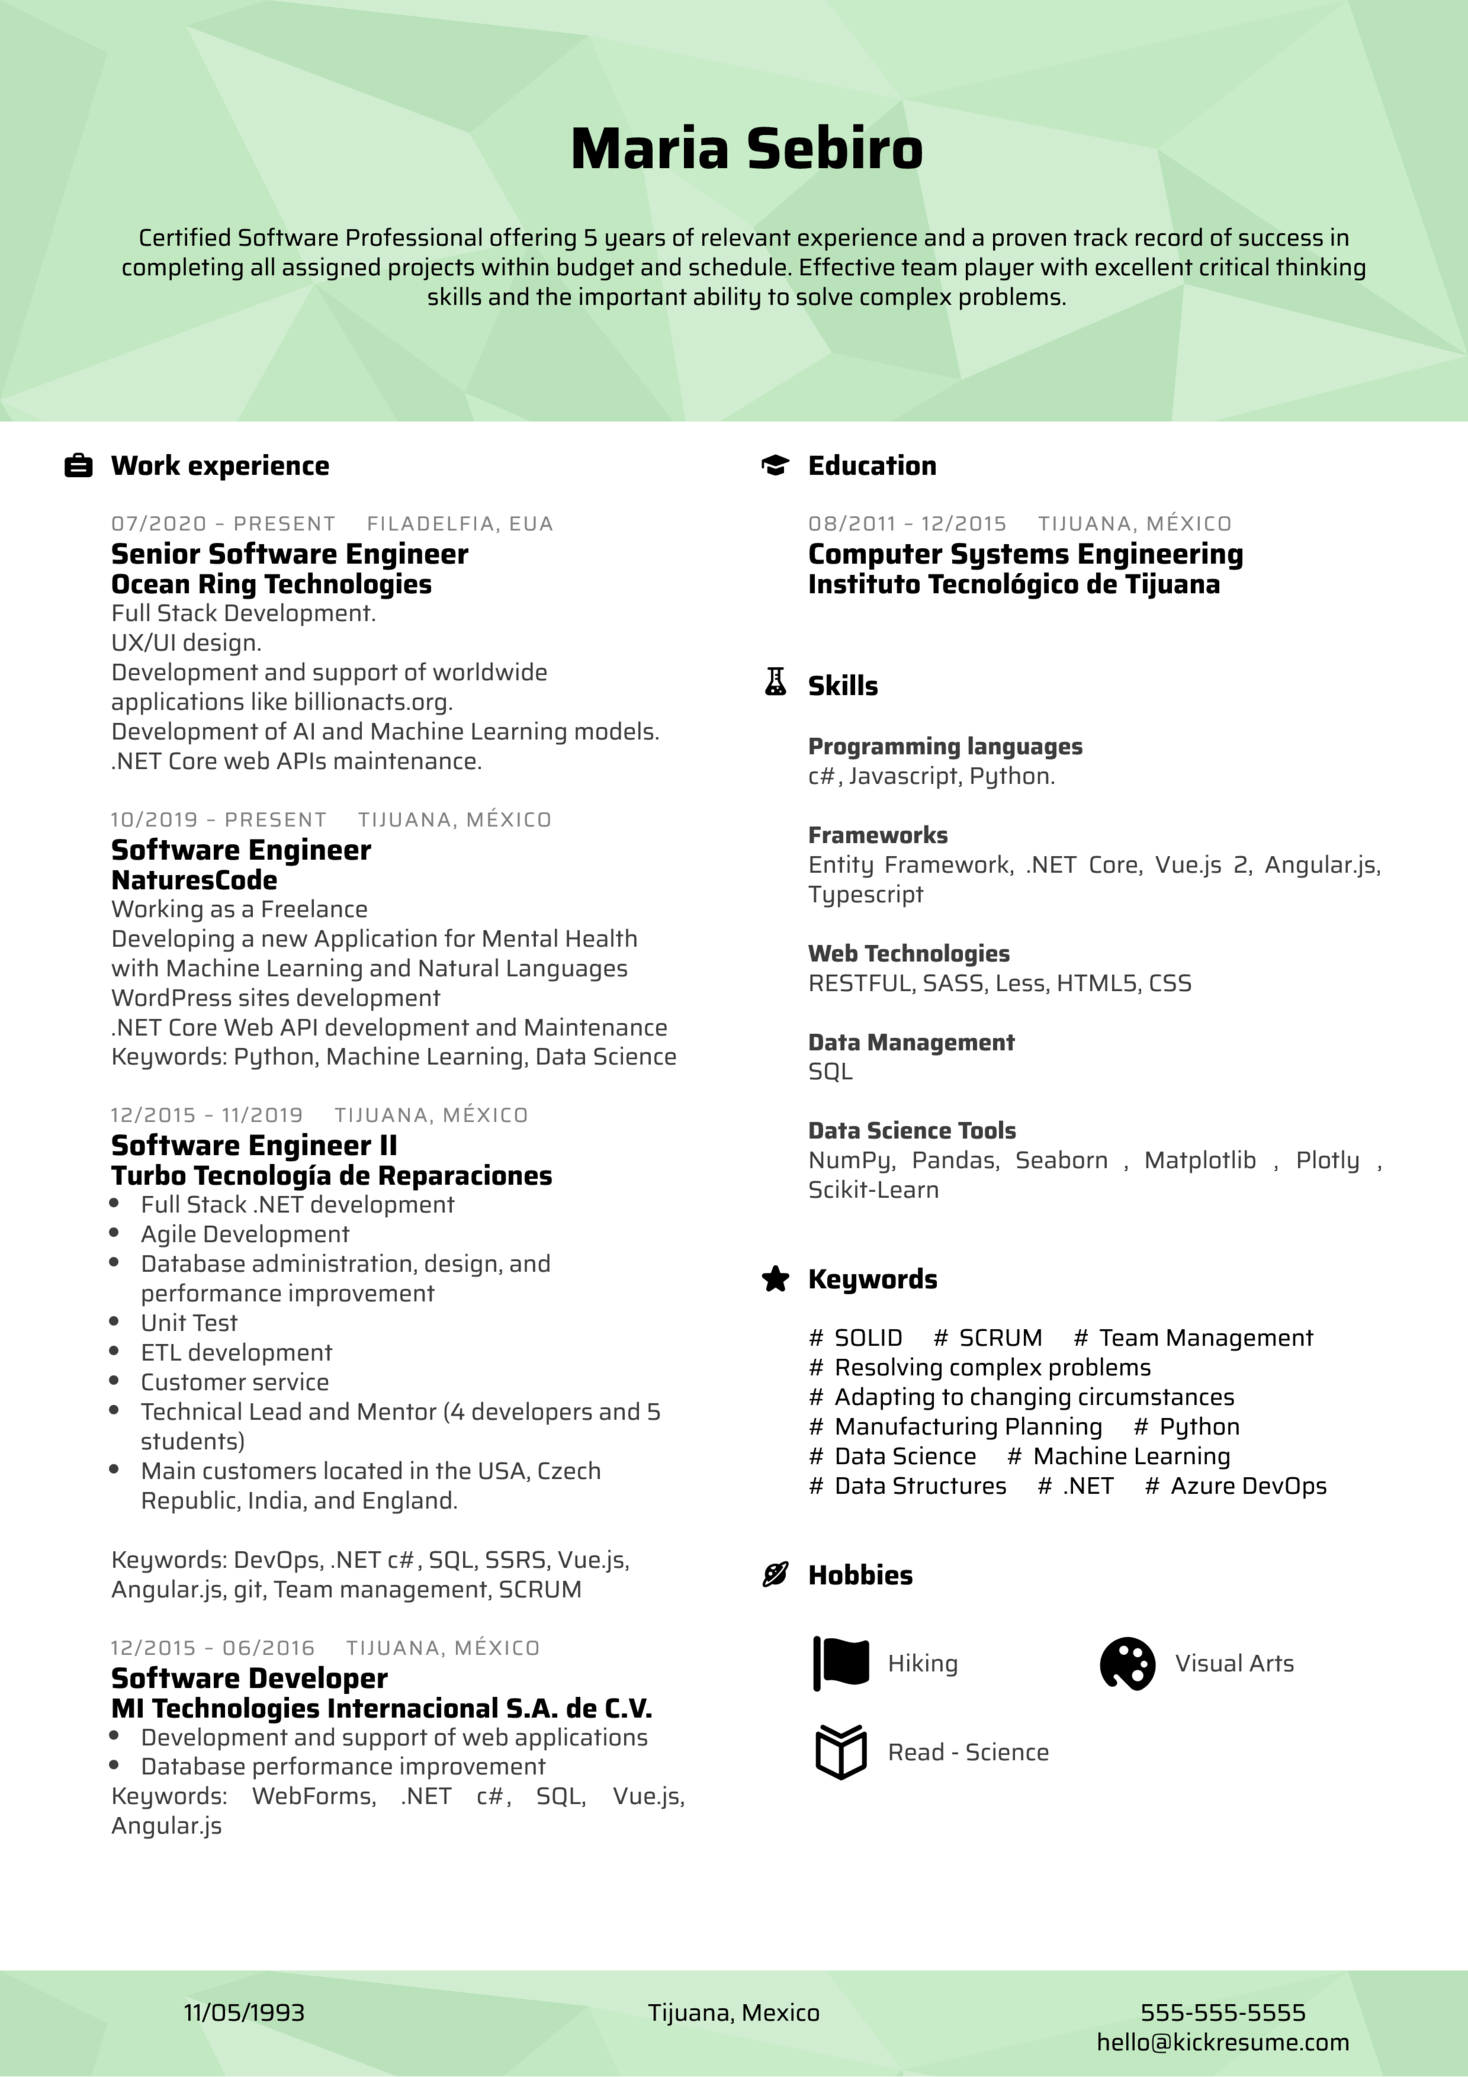 Software Professional at NaturesCode Resume Example (Part 1)